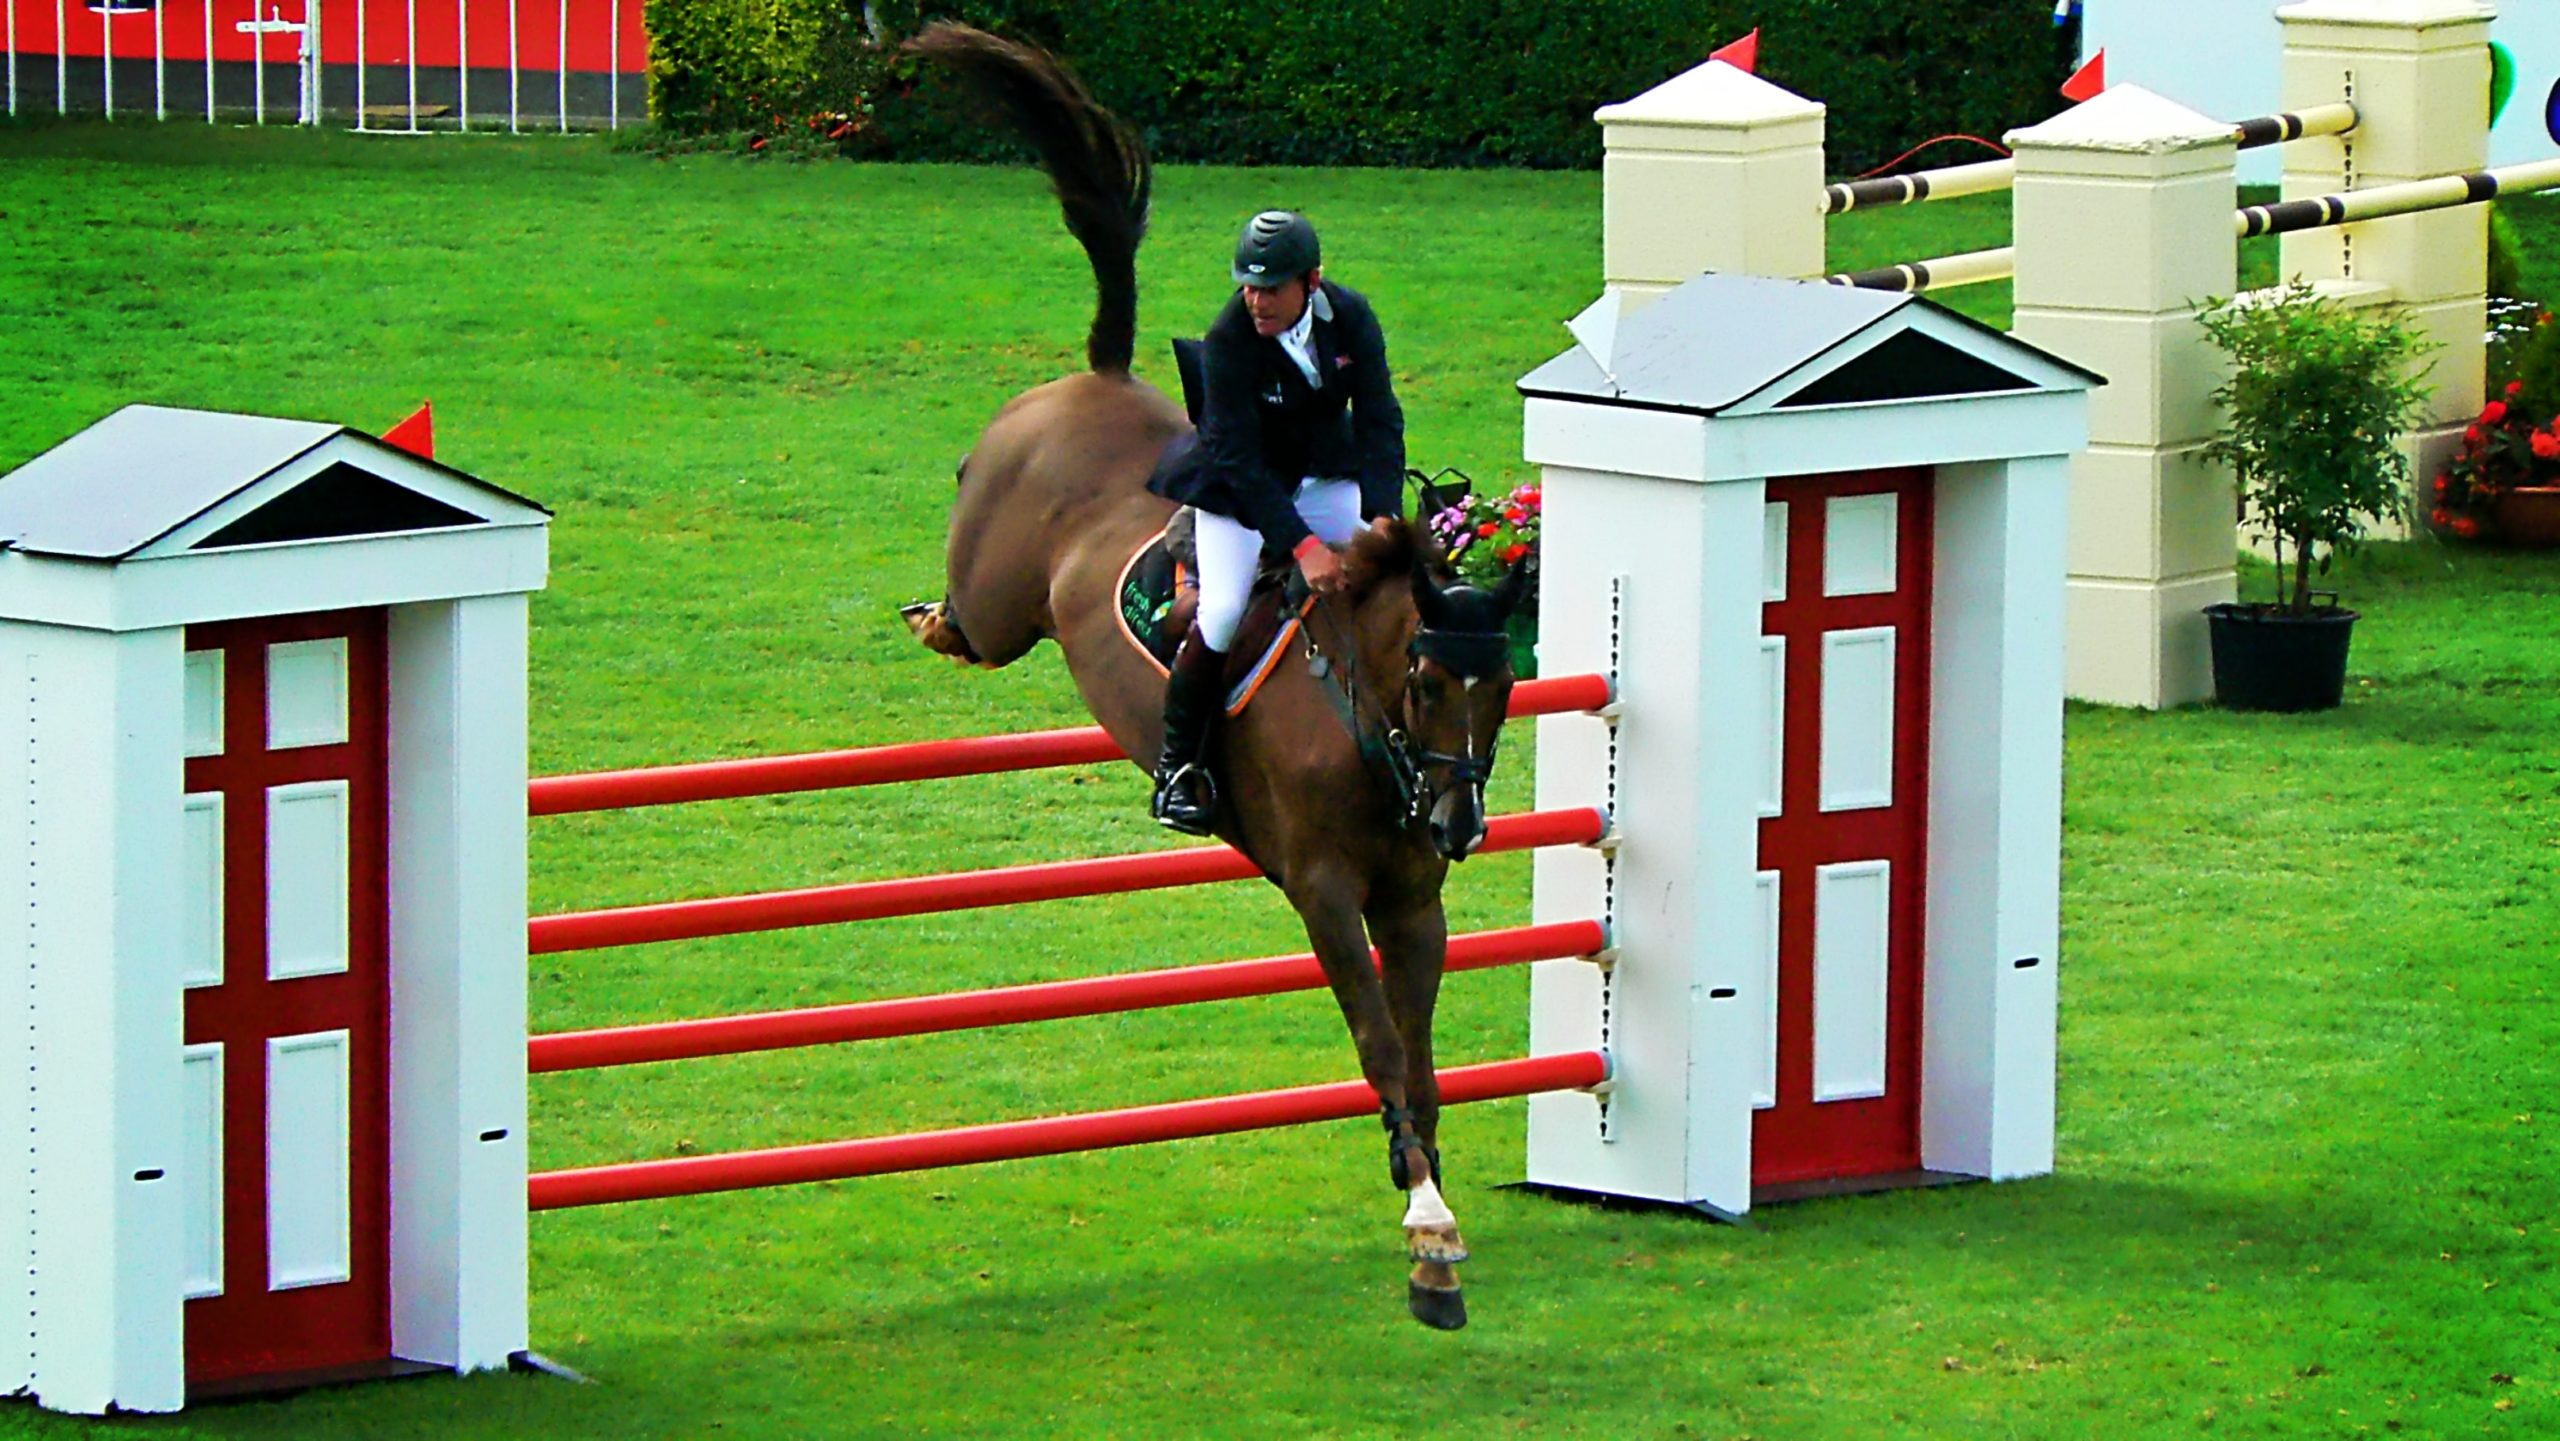 Saut d'obstacles: Comment aborder un vertical avec son cheval ?